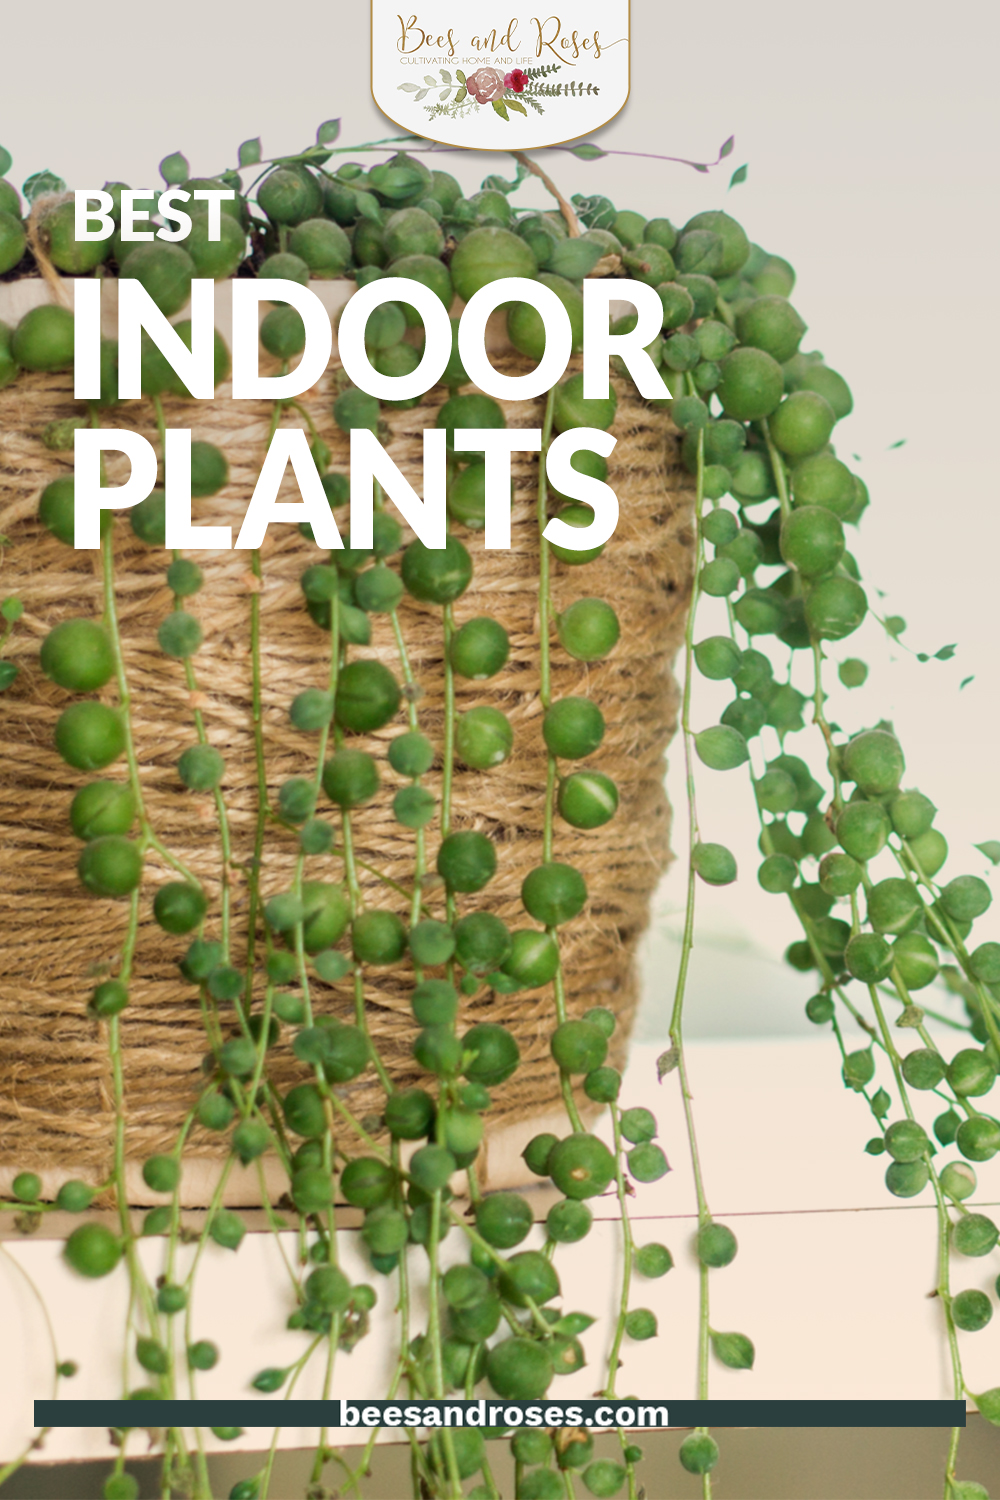 Indoor plants are all the rage this year and I can't wait to see my friends all develop their houseplant collection. These are some of my favorite houseplants of the year, so why not get started growing them ASAP? #plantcare #indoorplants #beesandrosesblog